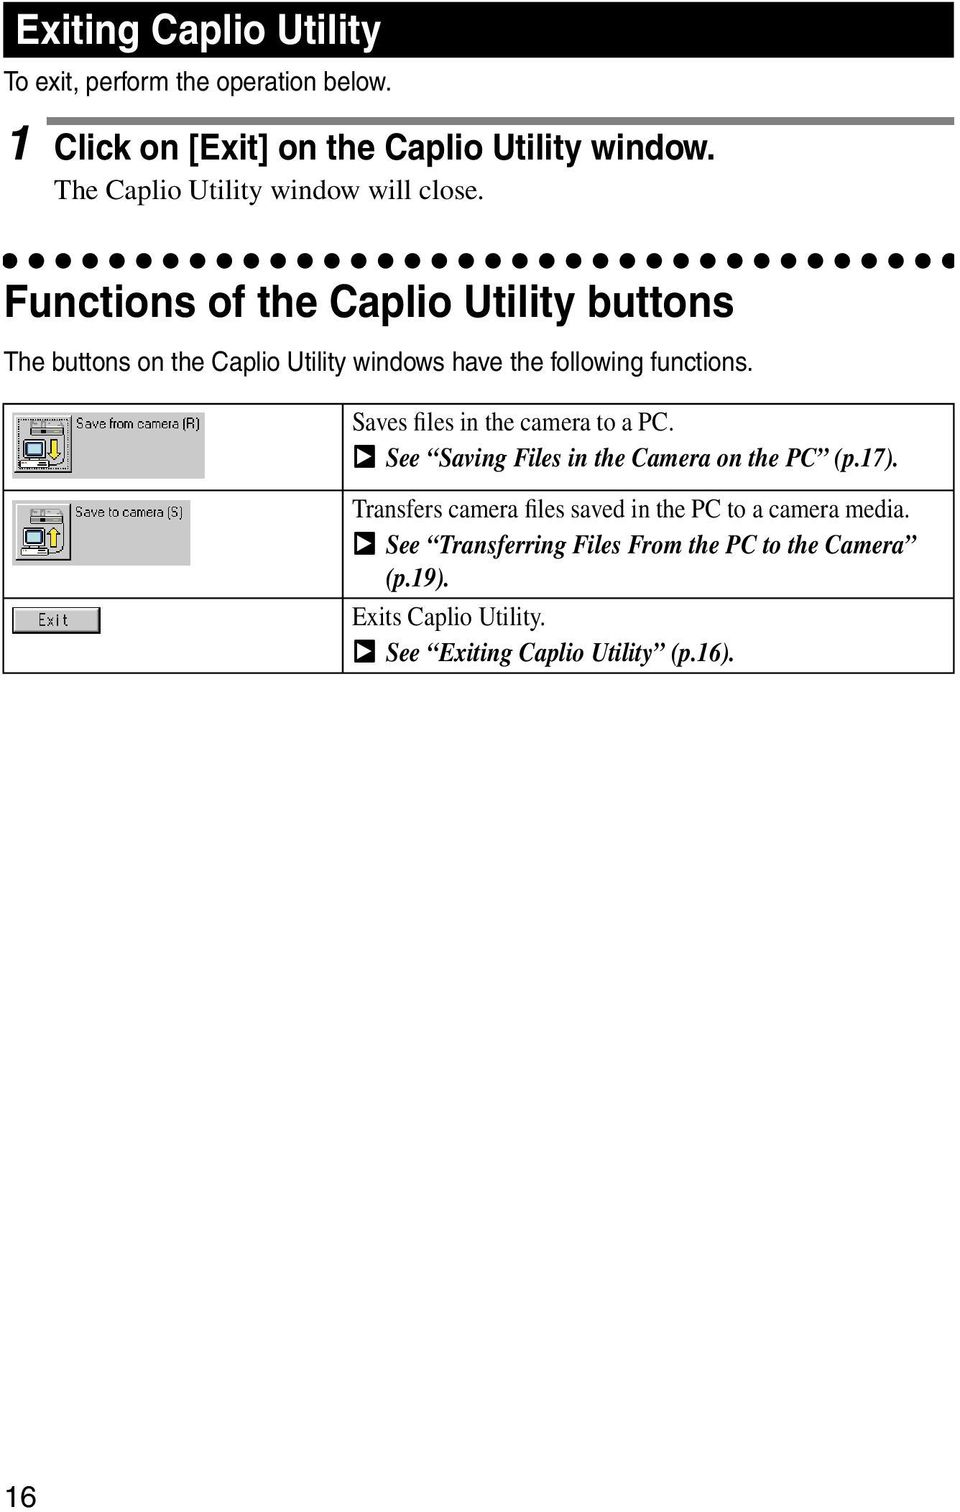 Functions of the Caplio Utility buttons The buttons on the Caplio Utility windows have the following functions.